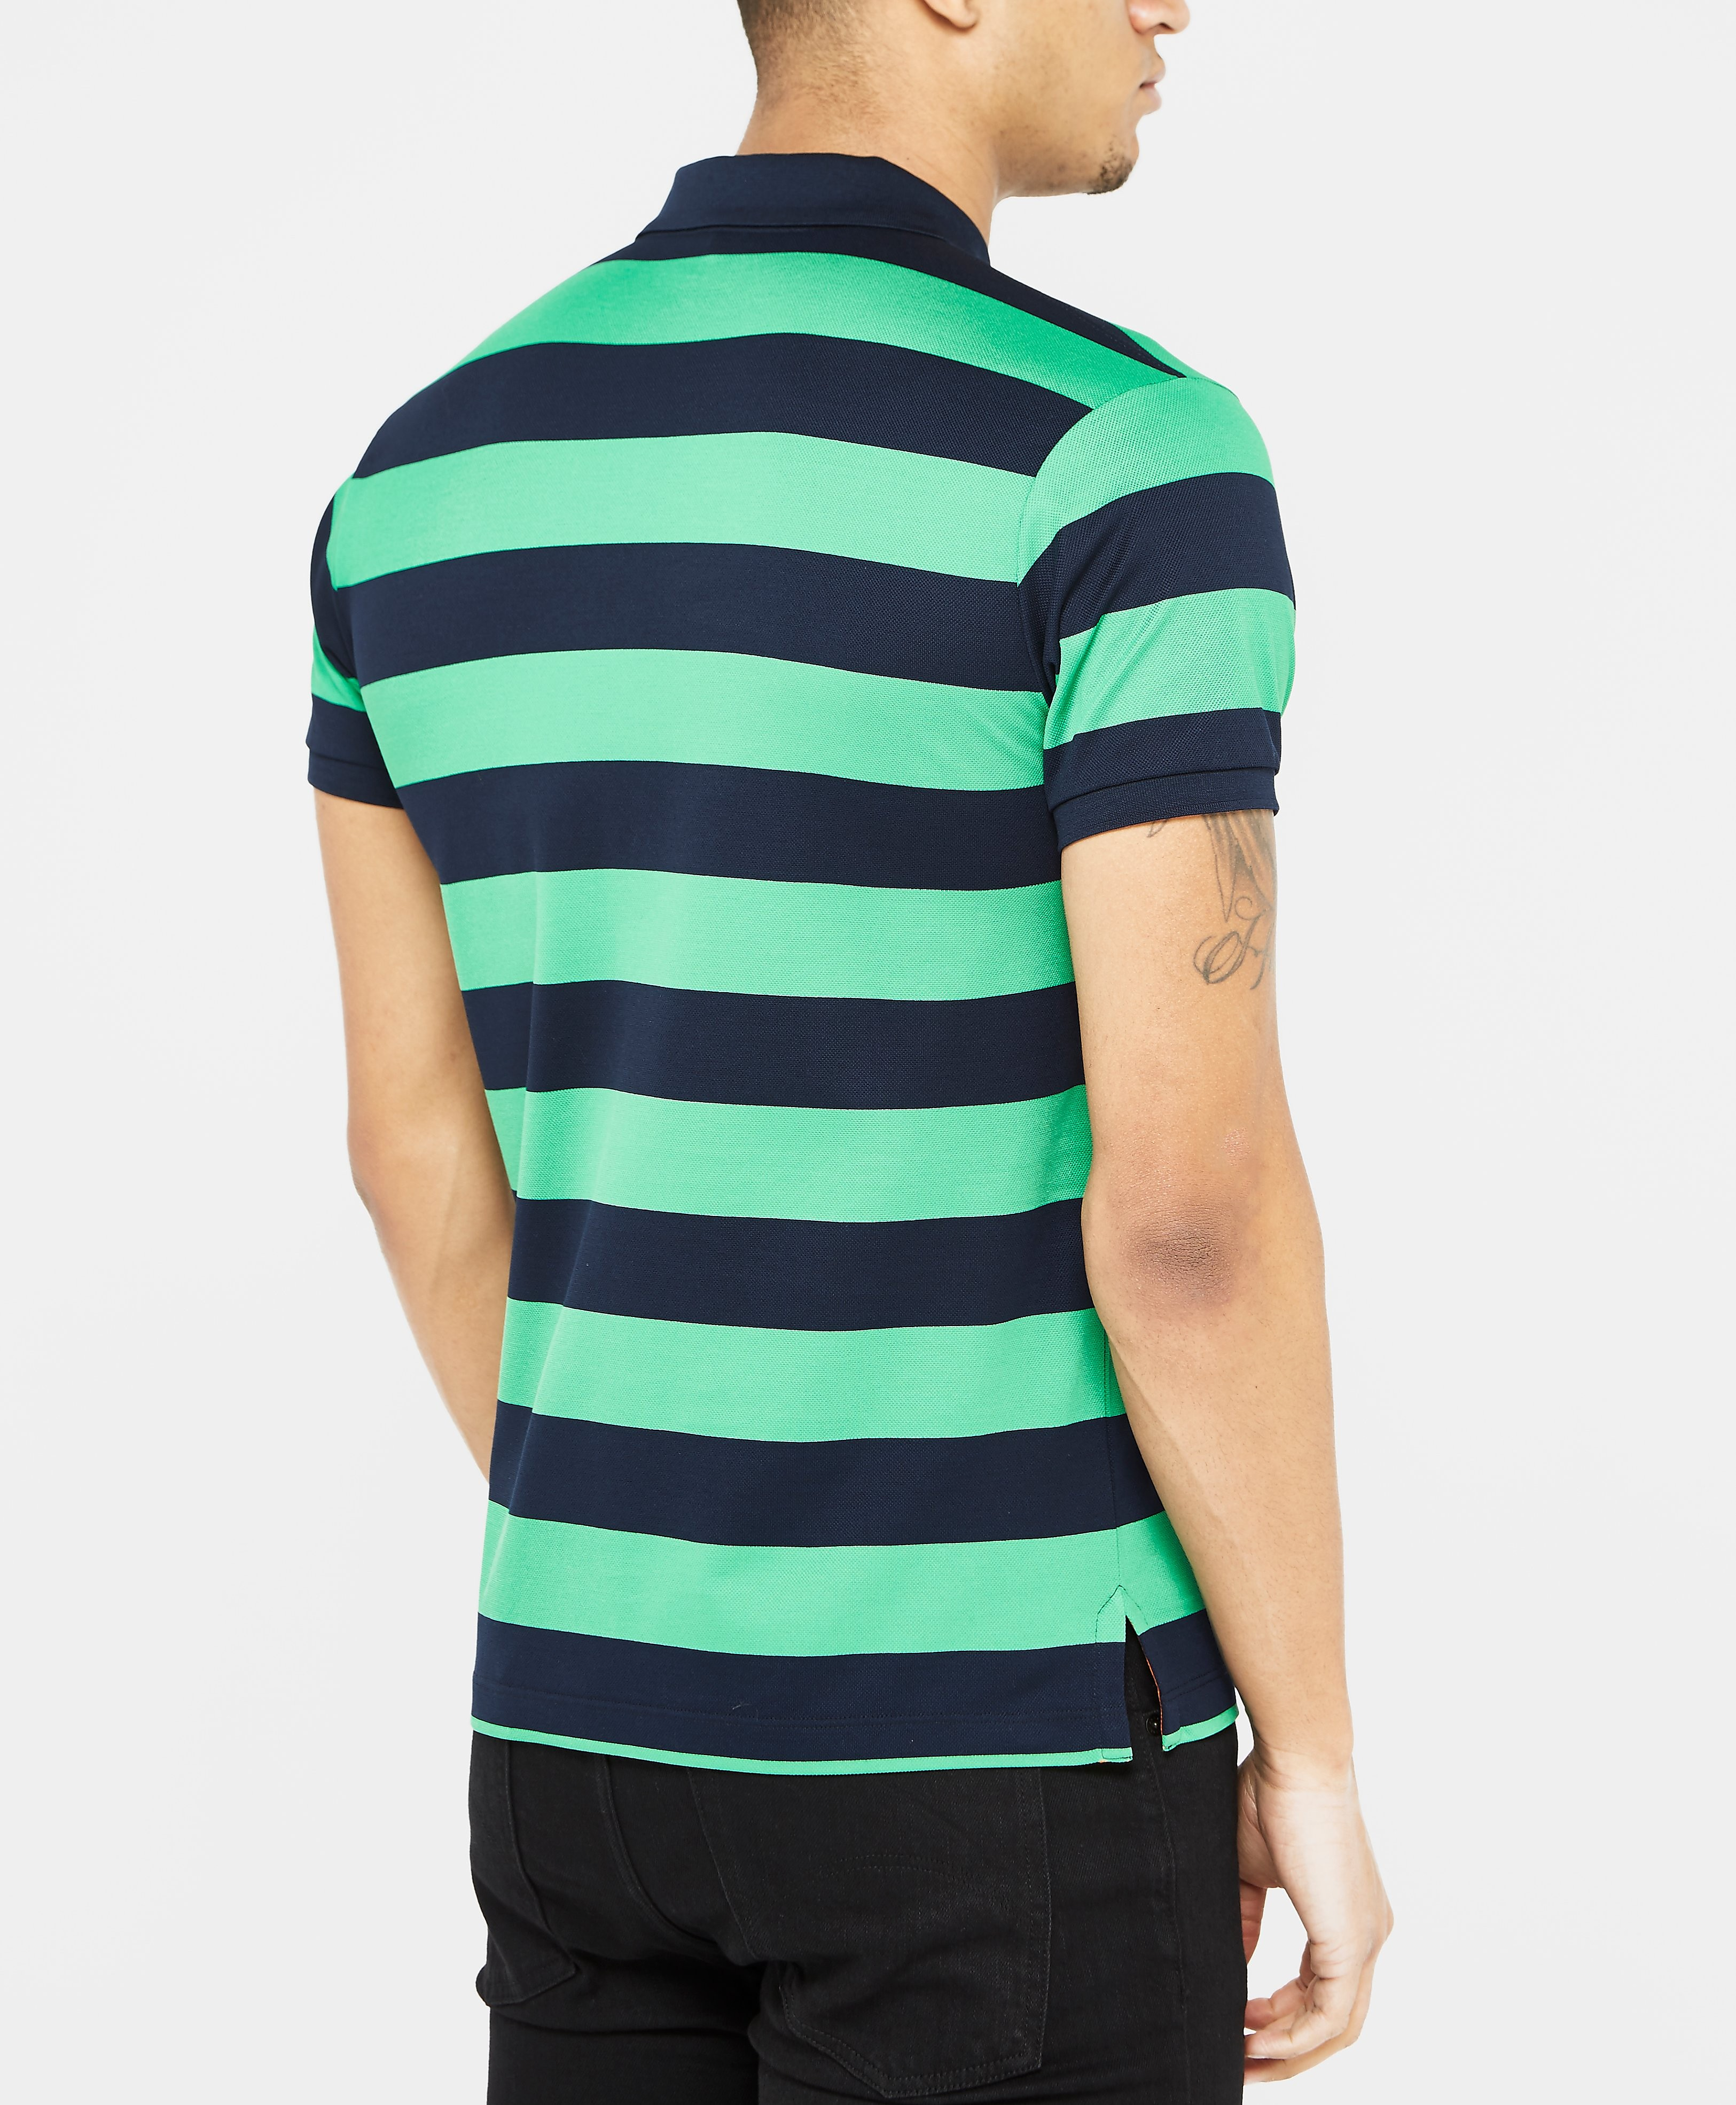 Paul & Shark Black Stripe Short Sleeve Polo Shirt